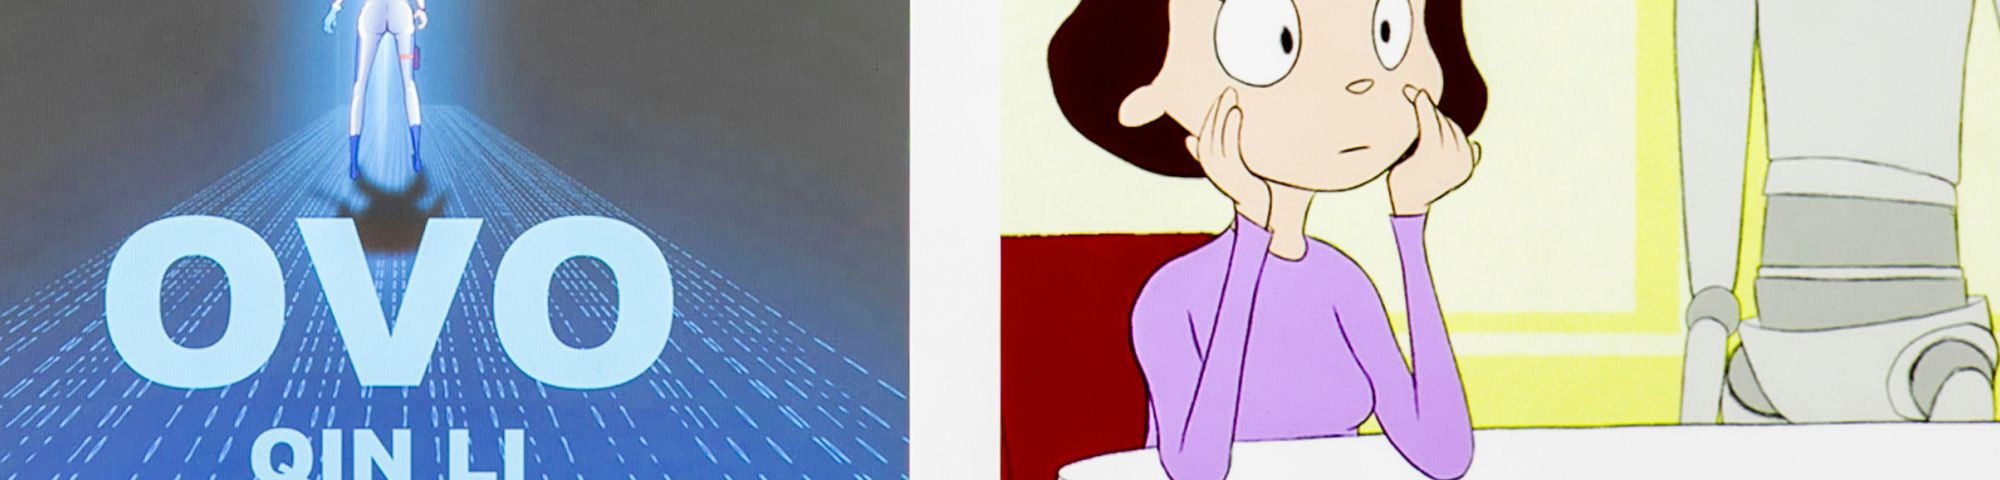 A cartoon woman sits at a kitchen table  with a robot next to her